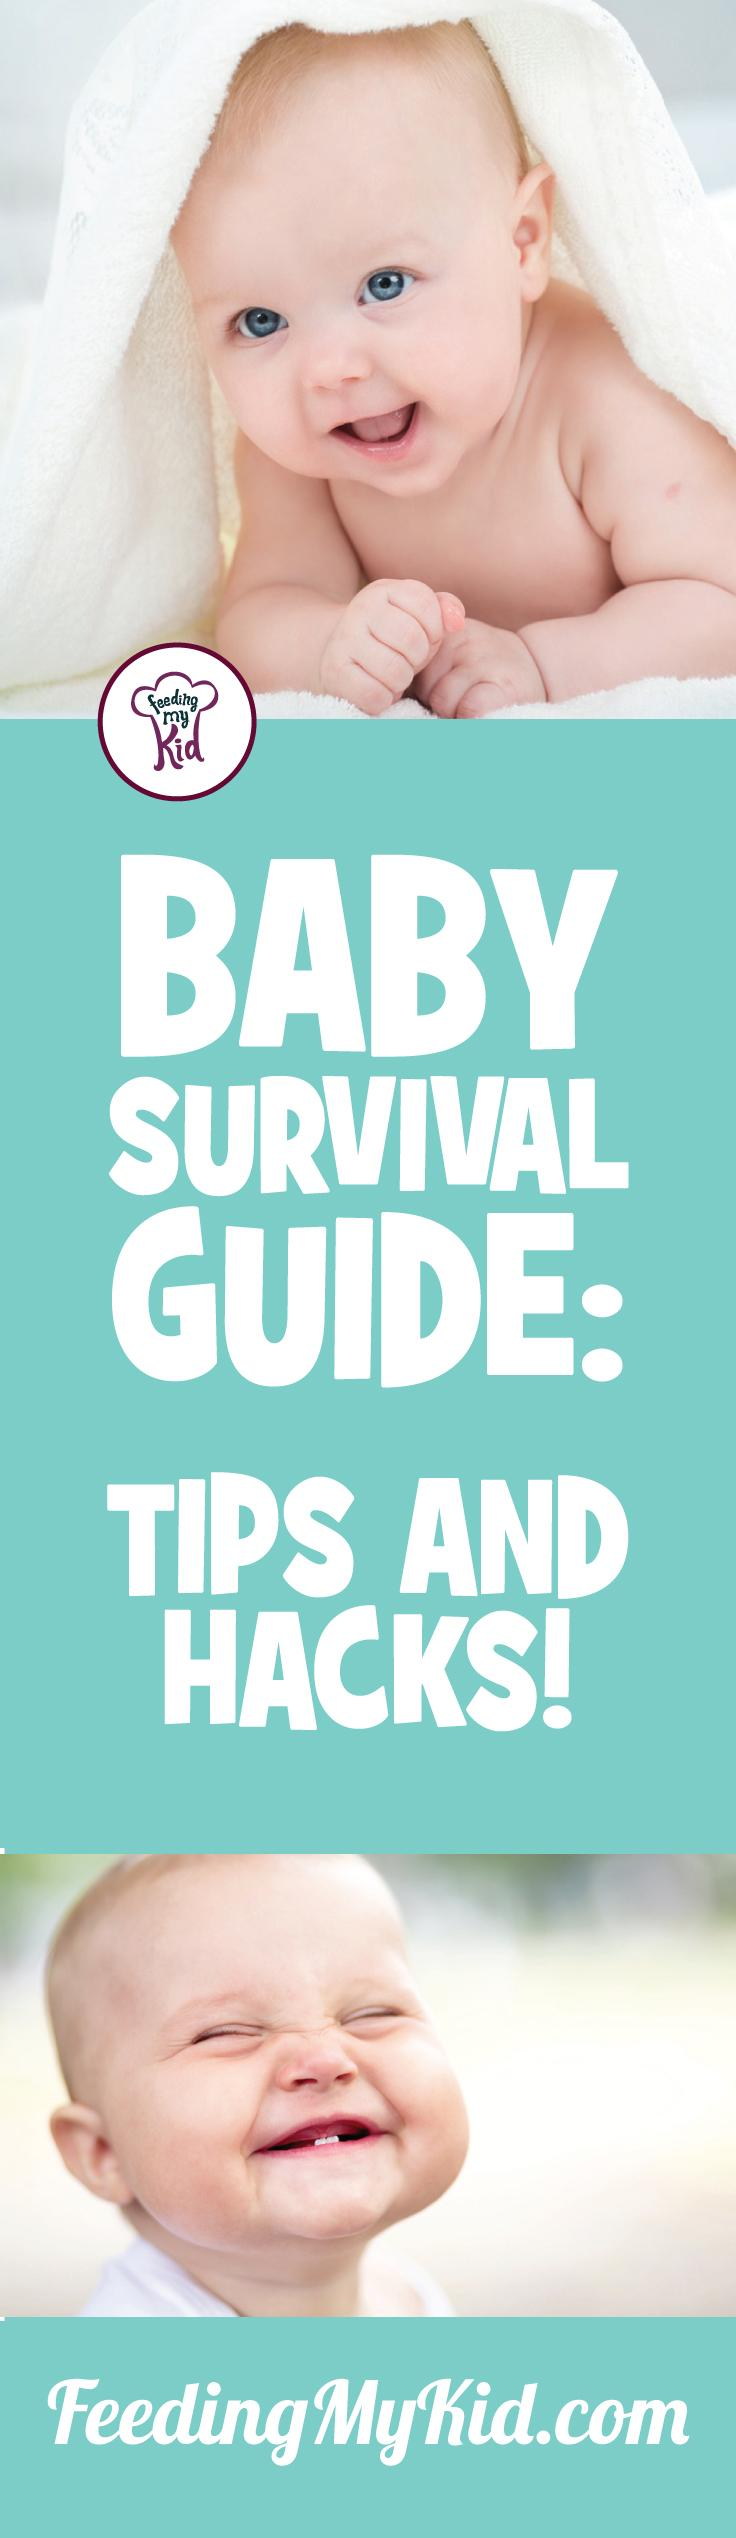 Check out these amazing baby care tips that will make your life so much easier! Raising your little one can be trying, but it doesn't have to be exhausting.